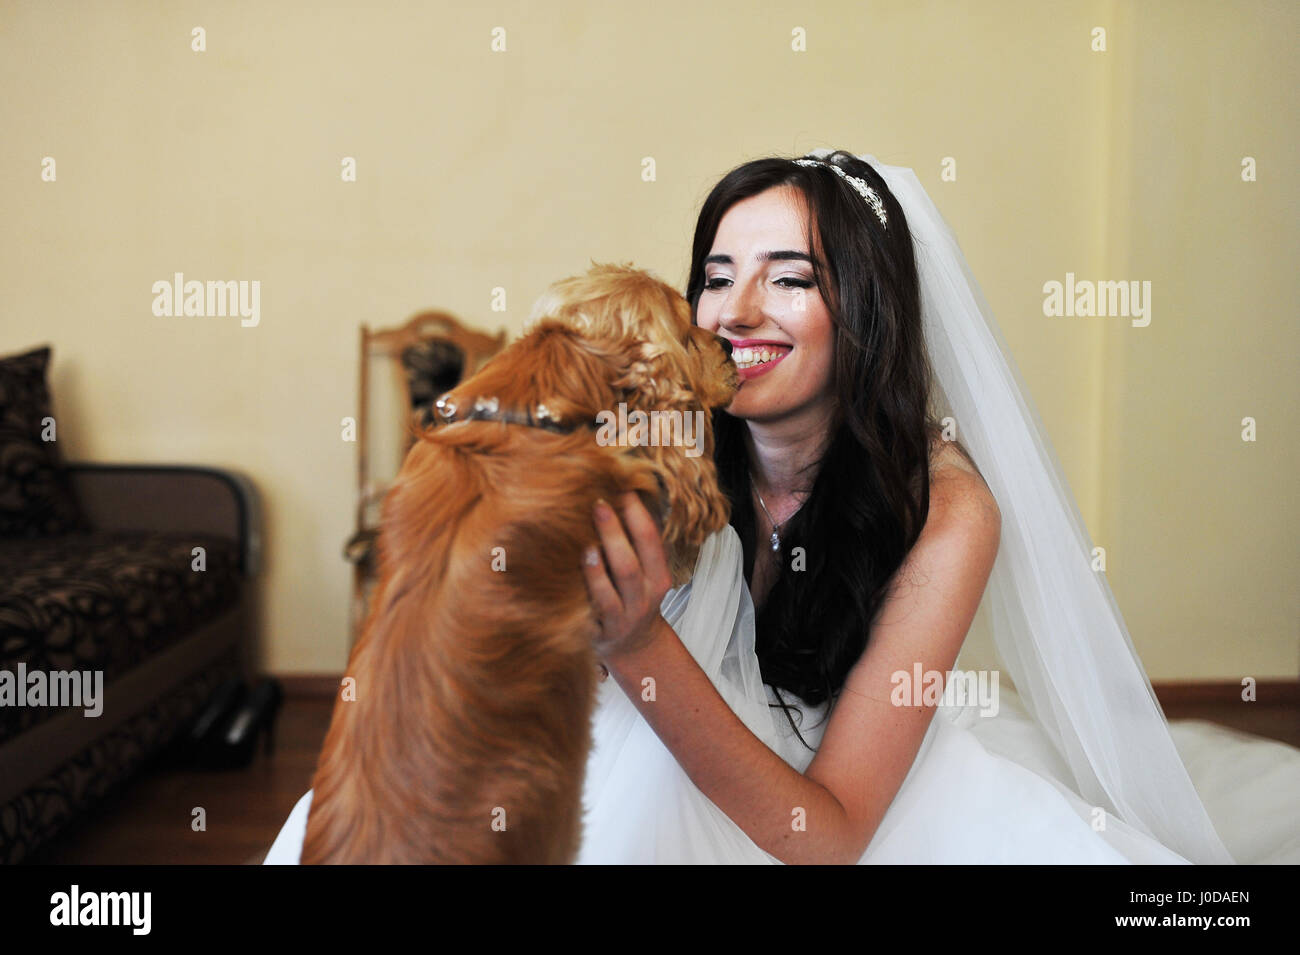 Beautiful Smiling Brunette Bride At Wedding Dress Room With Funny Cocker Spaniel Dog